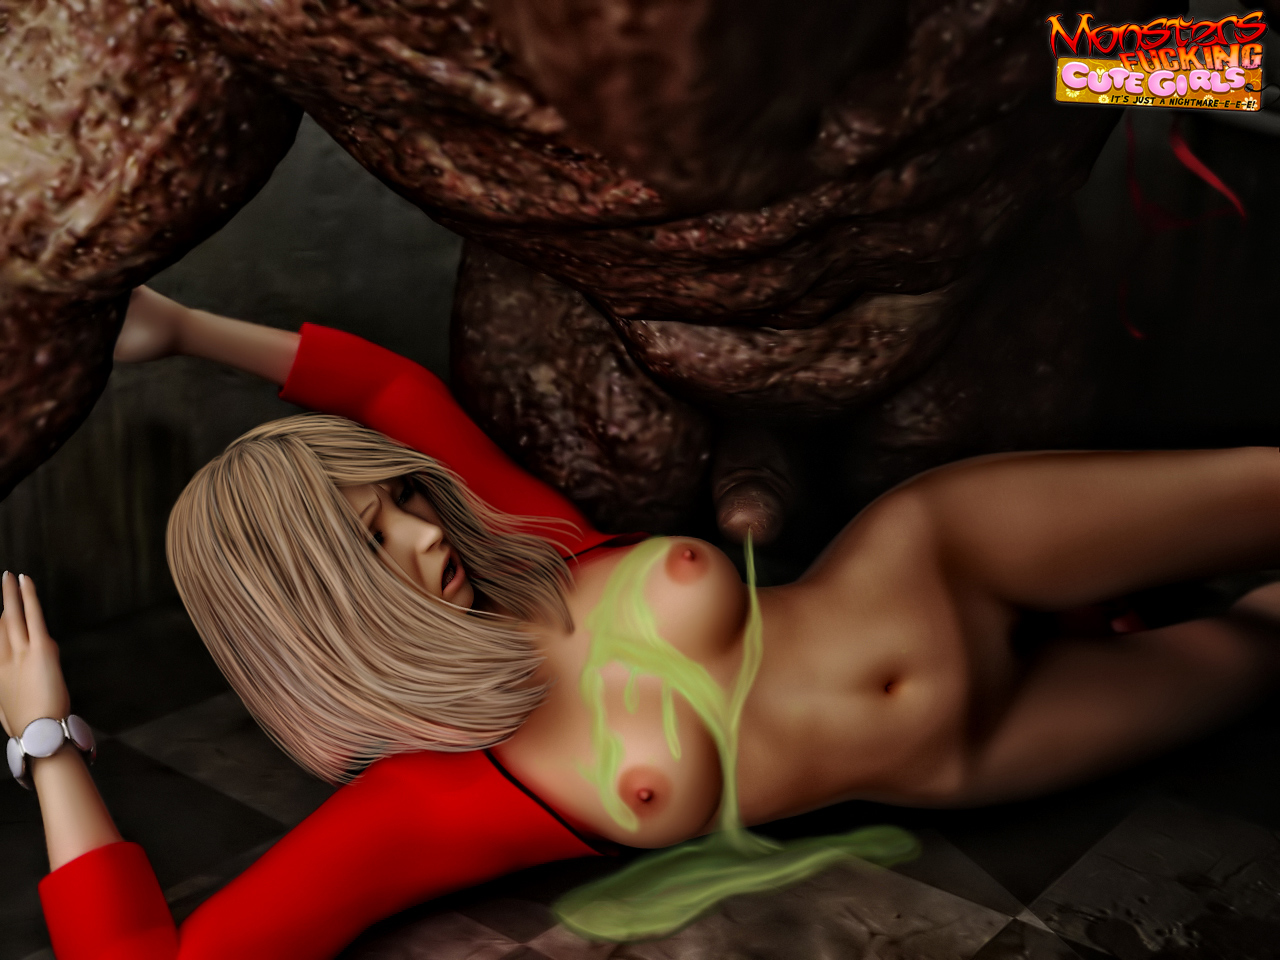 Hentai girl fucked by a monster erotic video